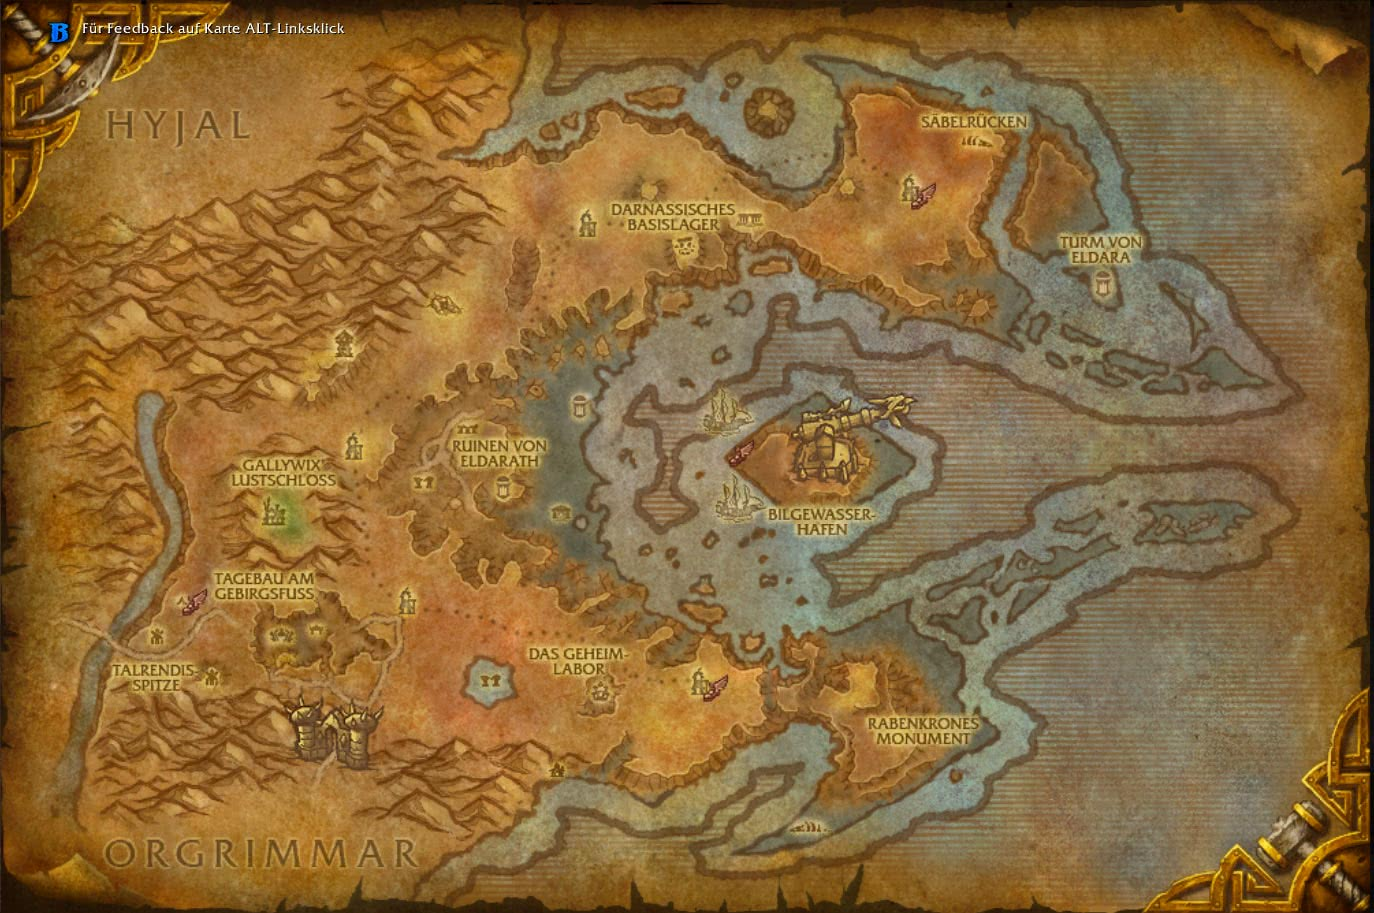 azshara Dun Morogh Map on khaz modan map, mulgore map, azuremyst isle map, undercity map, elwynn forest map, darnassus map, duskwood map, ironforge map, bloodmyst isle map, darkshore map, tanaris map, kharanos wow map, grizzly hills map, stormwind map, desolace map, darkmoon faire map, zangarmarsh map, silverpine forest map, tirisfal glades map, loch modan map,